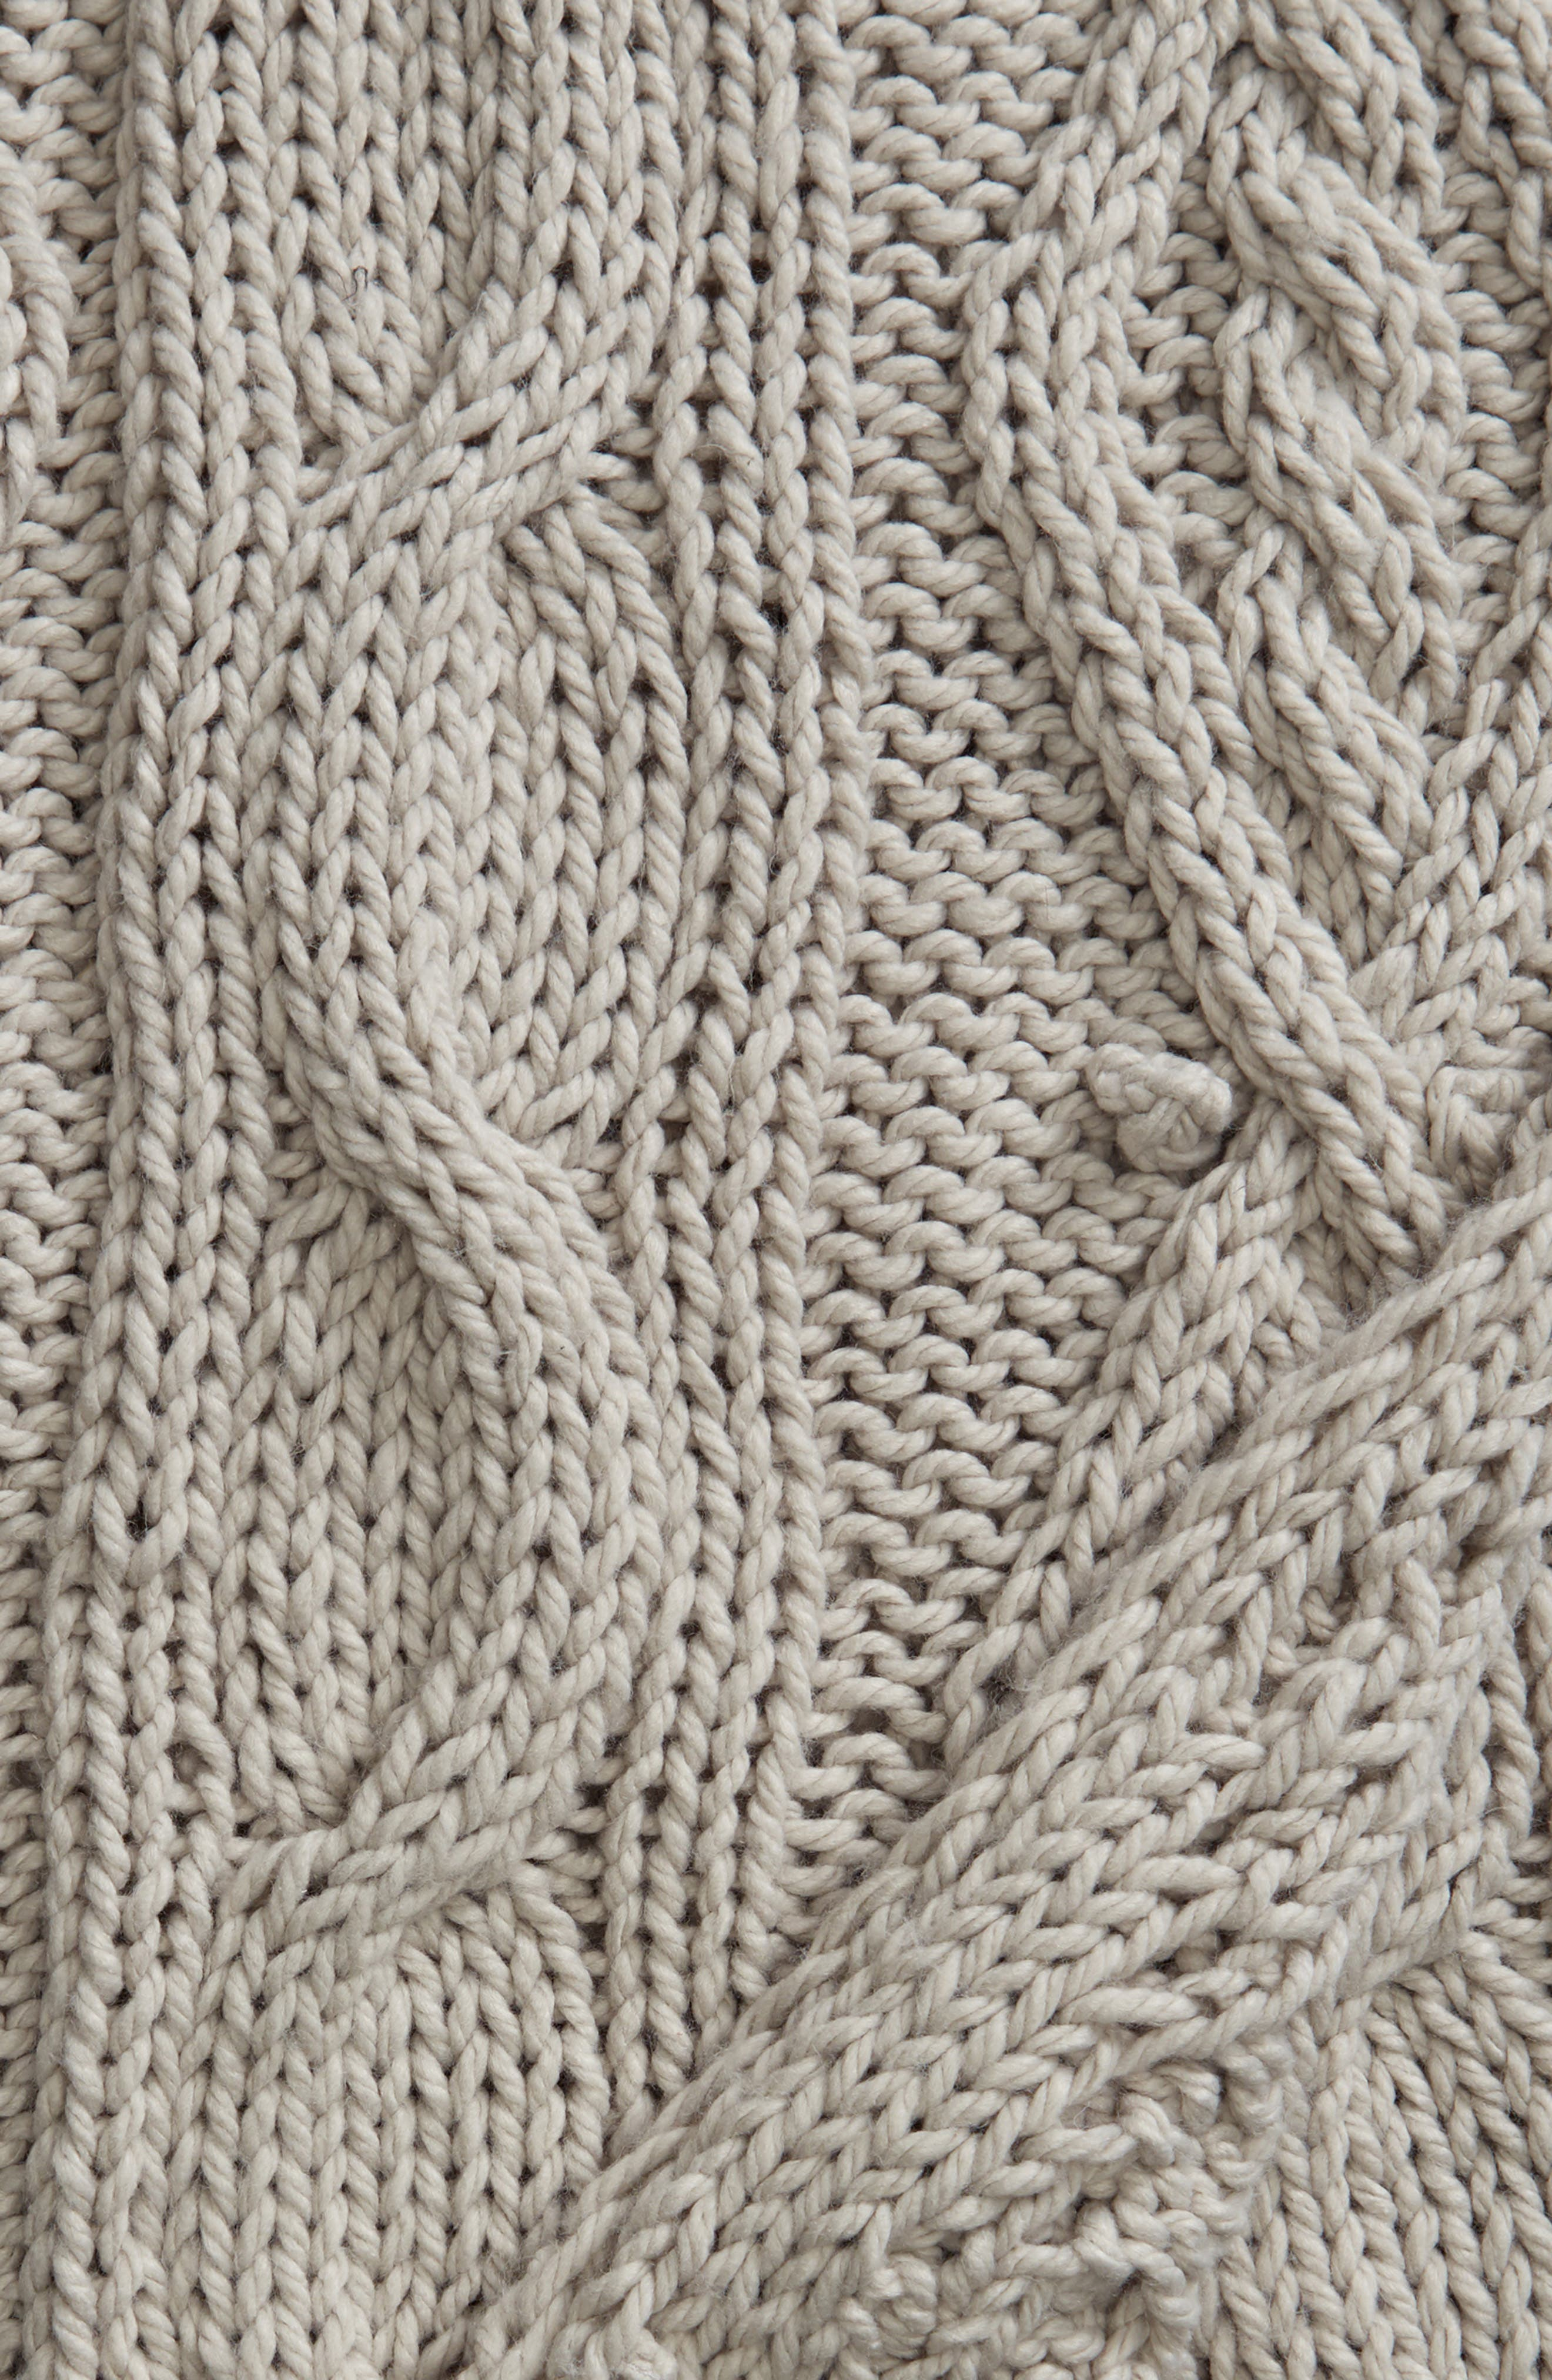 Chunky Cable Knit Throw Blanket,                             Alternate thumbnail 2, color,                             020